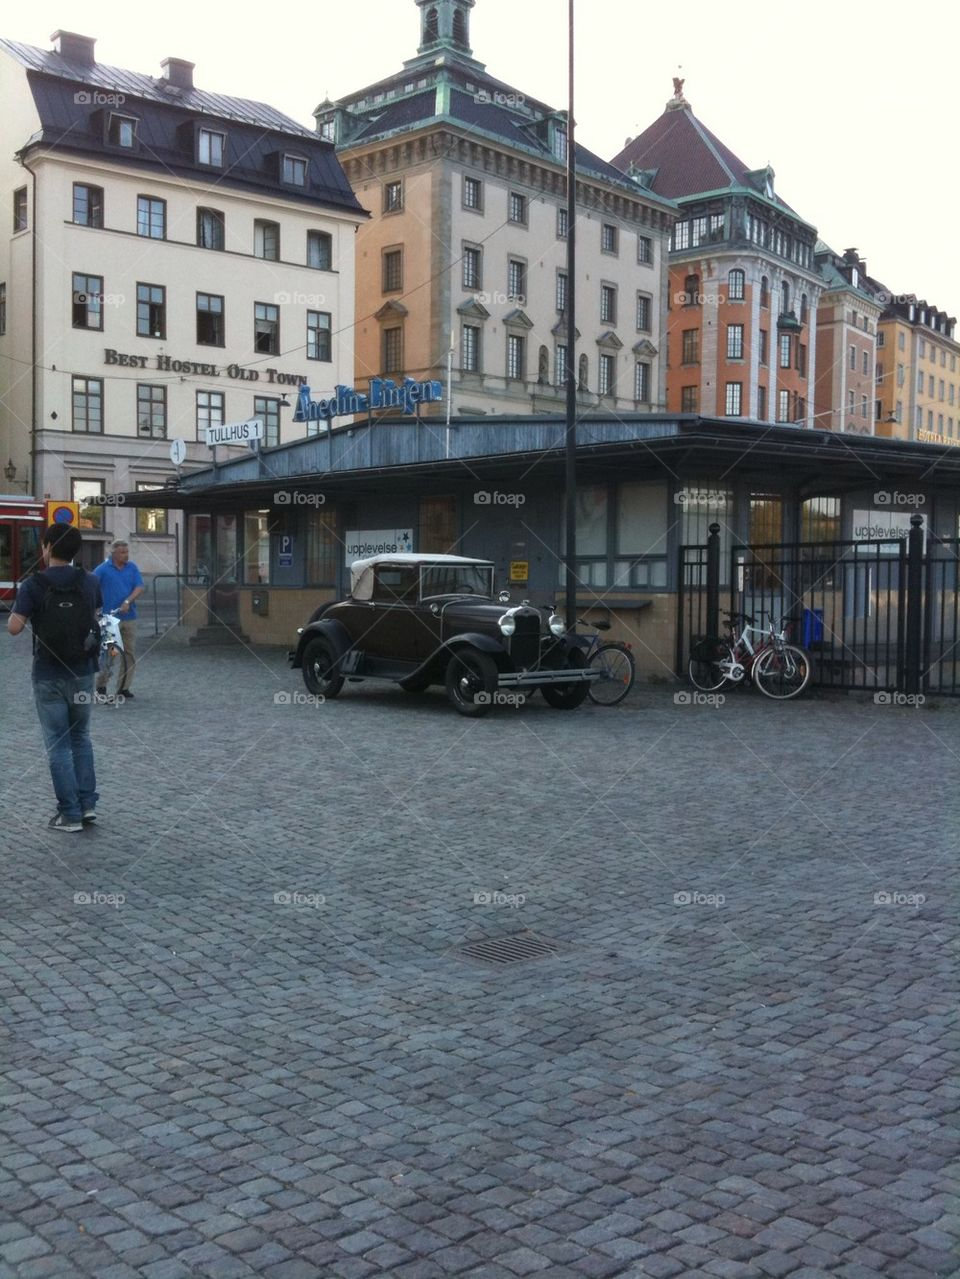 The old car in old town